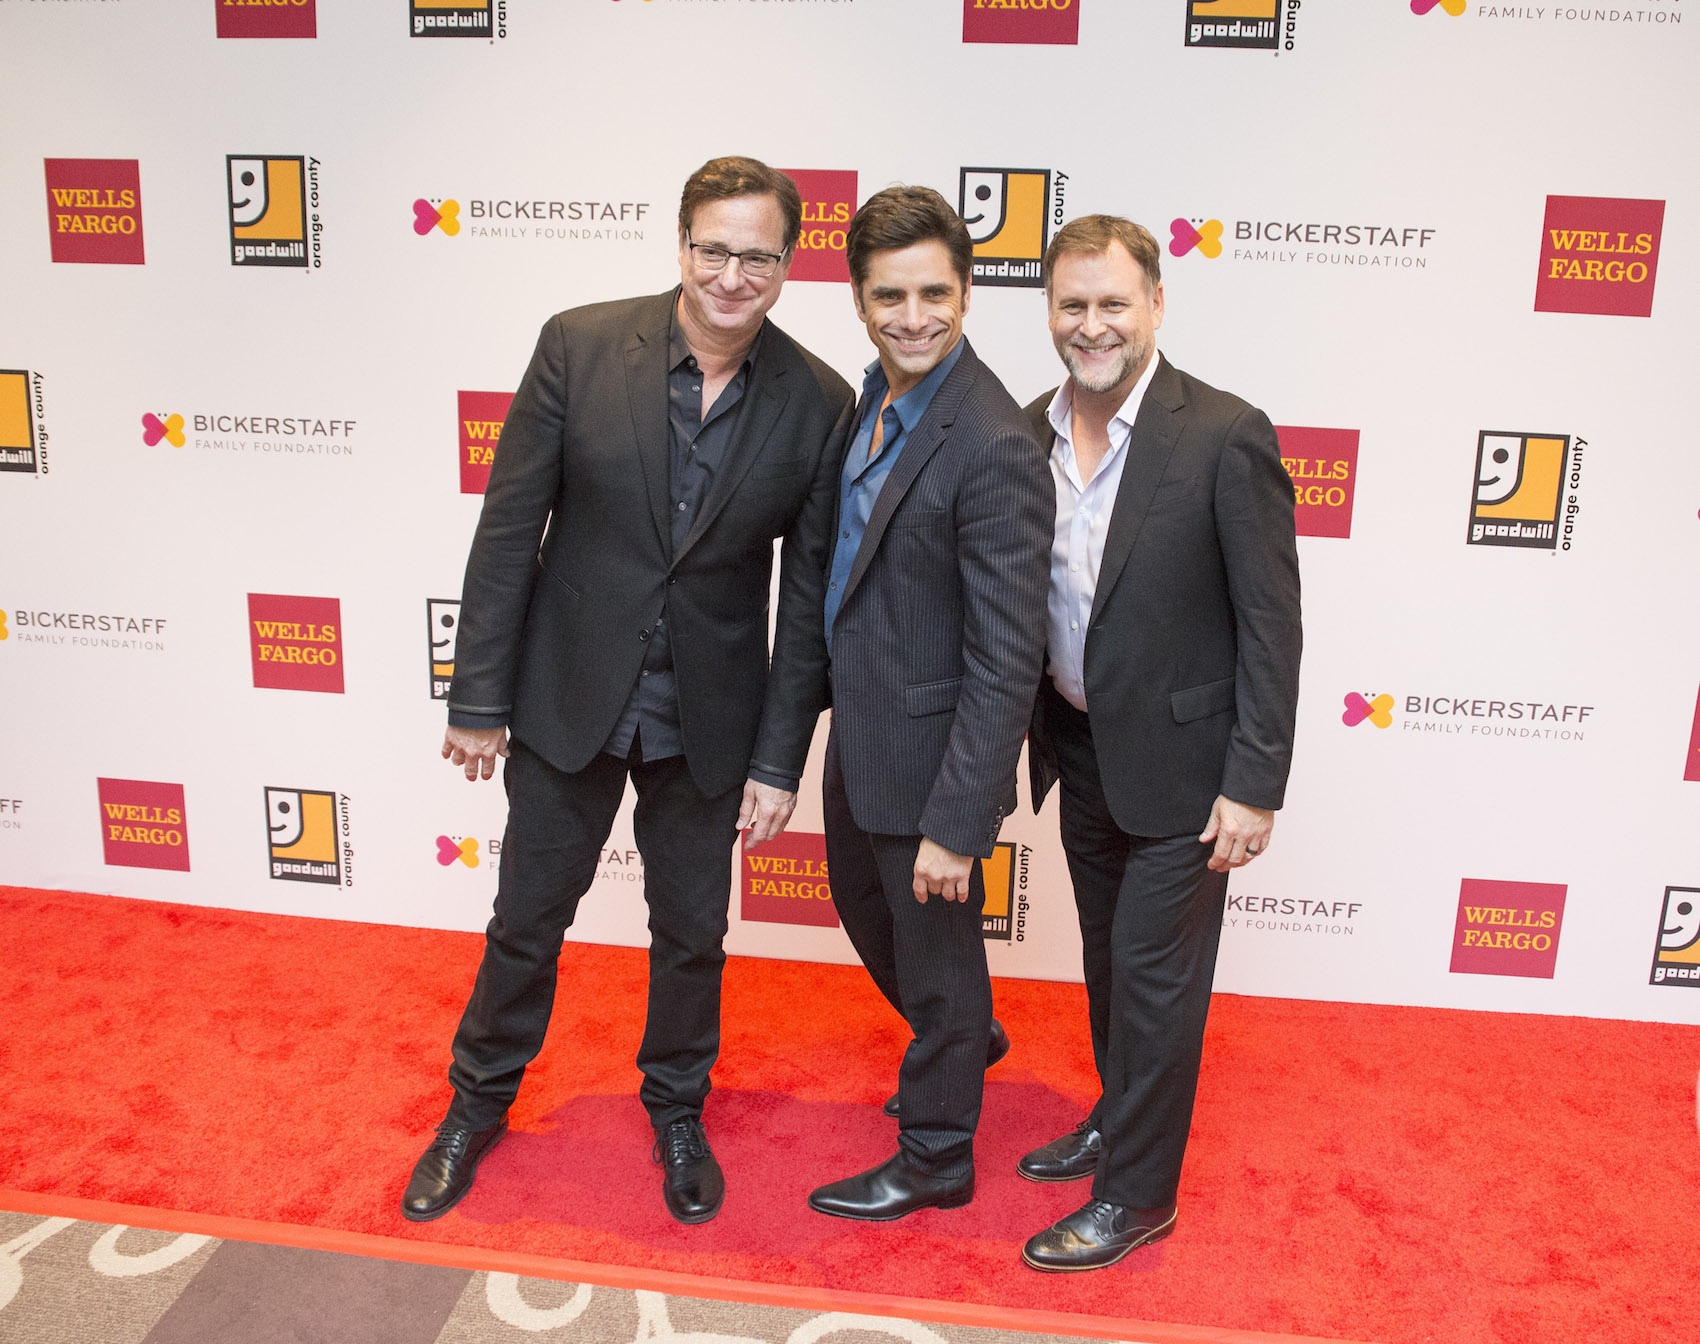 Fuller house hosts goodwill gala event for all in laguna for What does the ceo of goodwill make